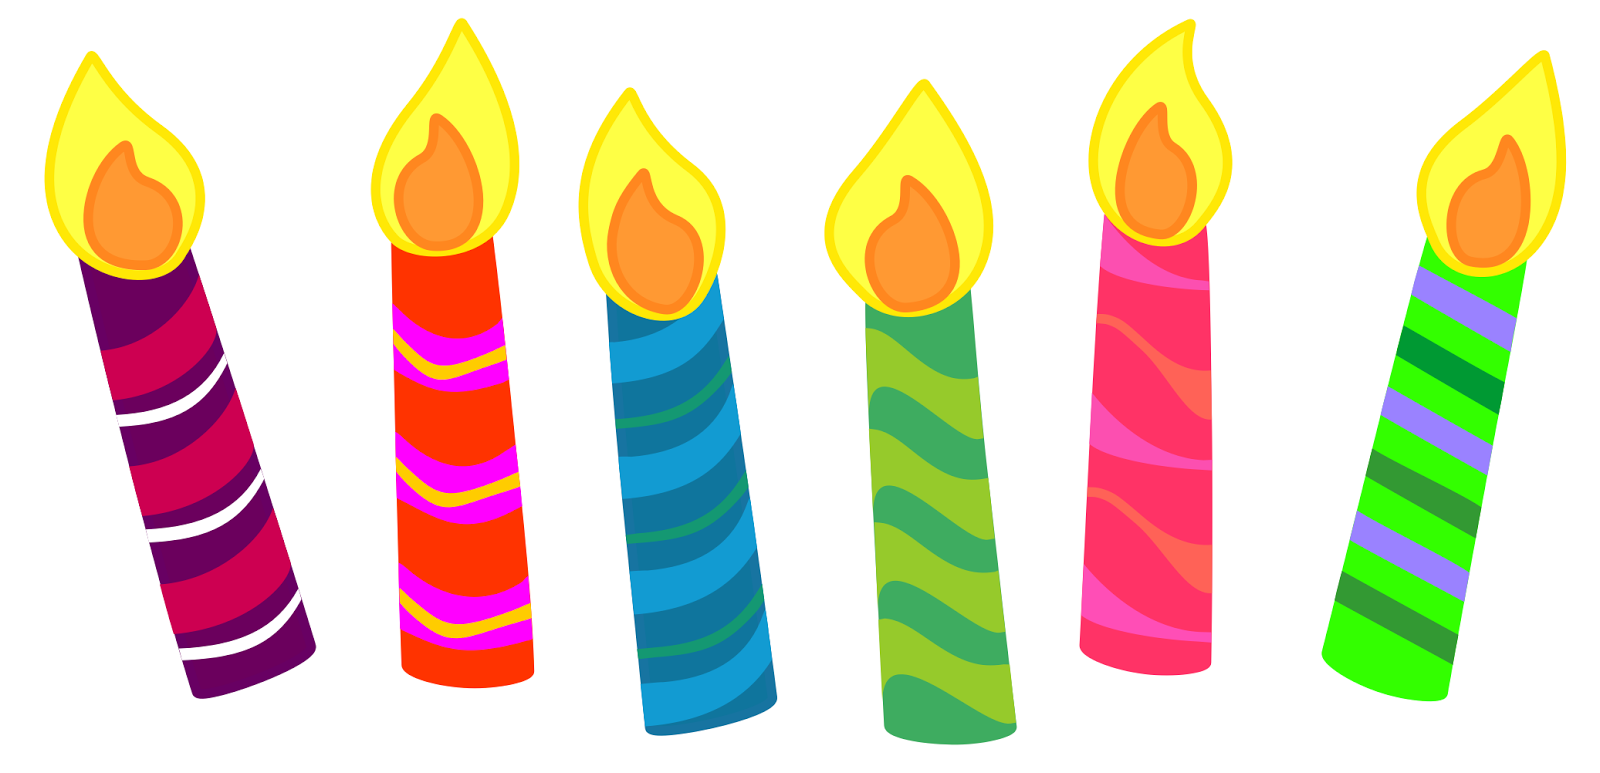 Clip Art Birthday Candle Clipart birthday candle clipart kid click here for single tier yellow cake with no candles